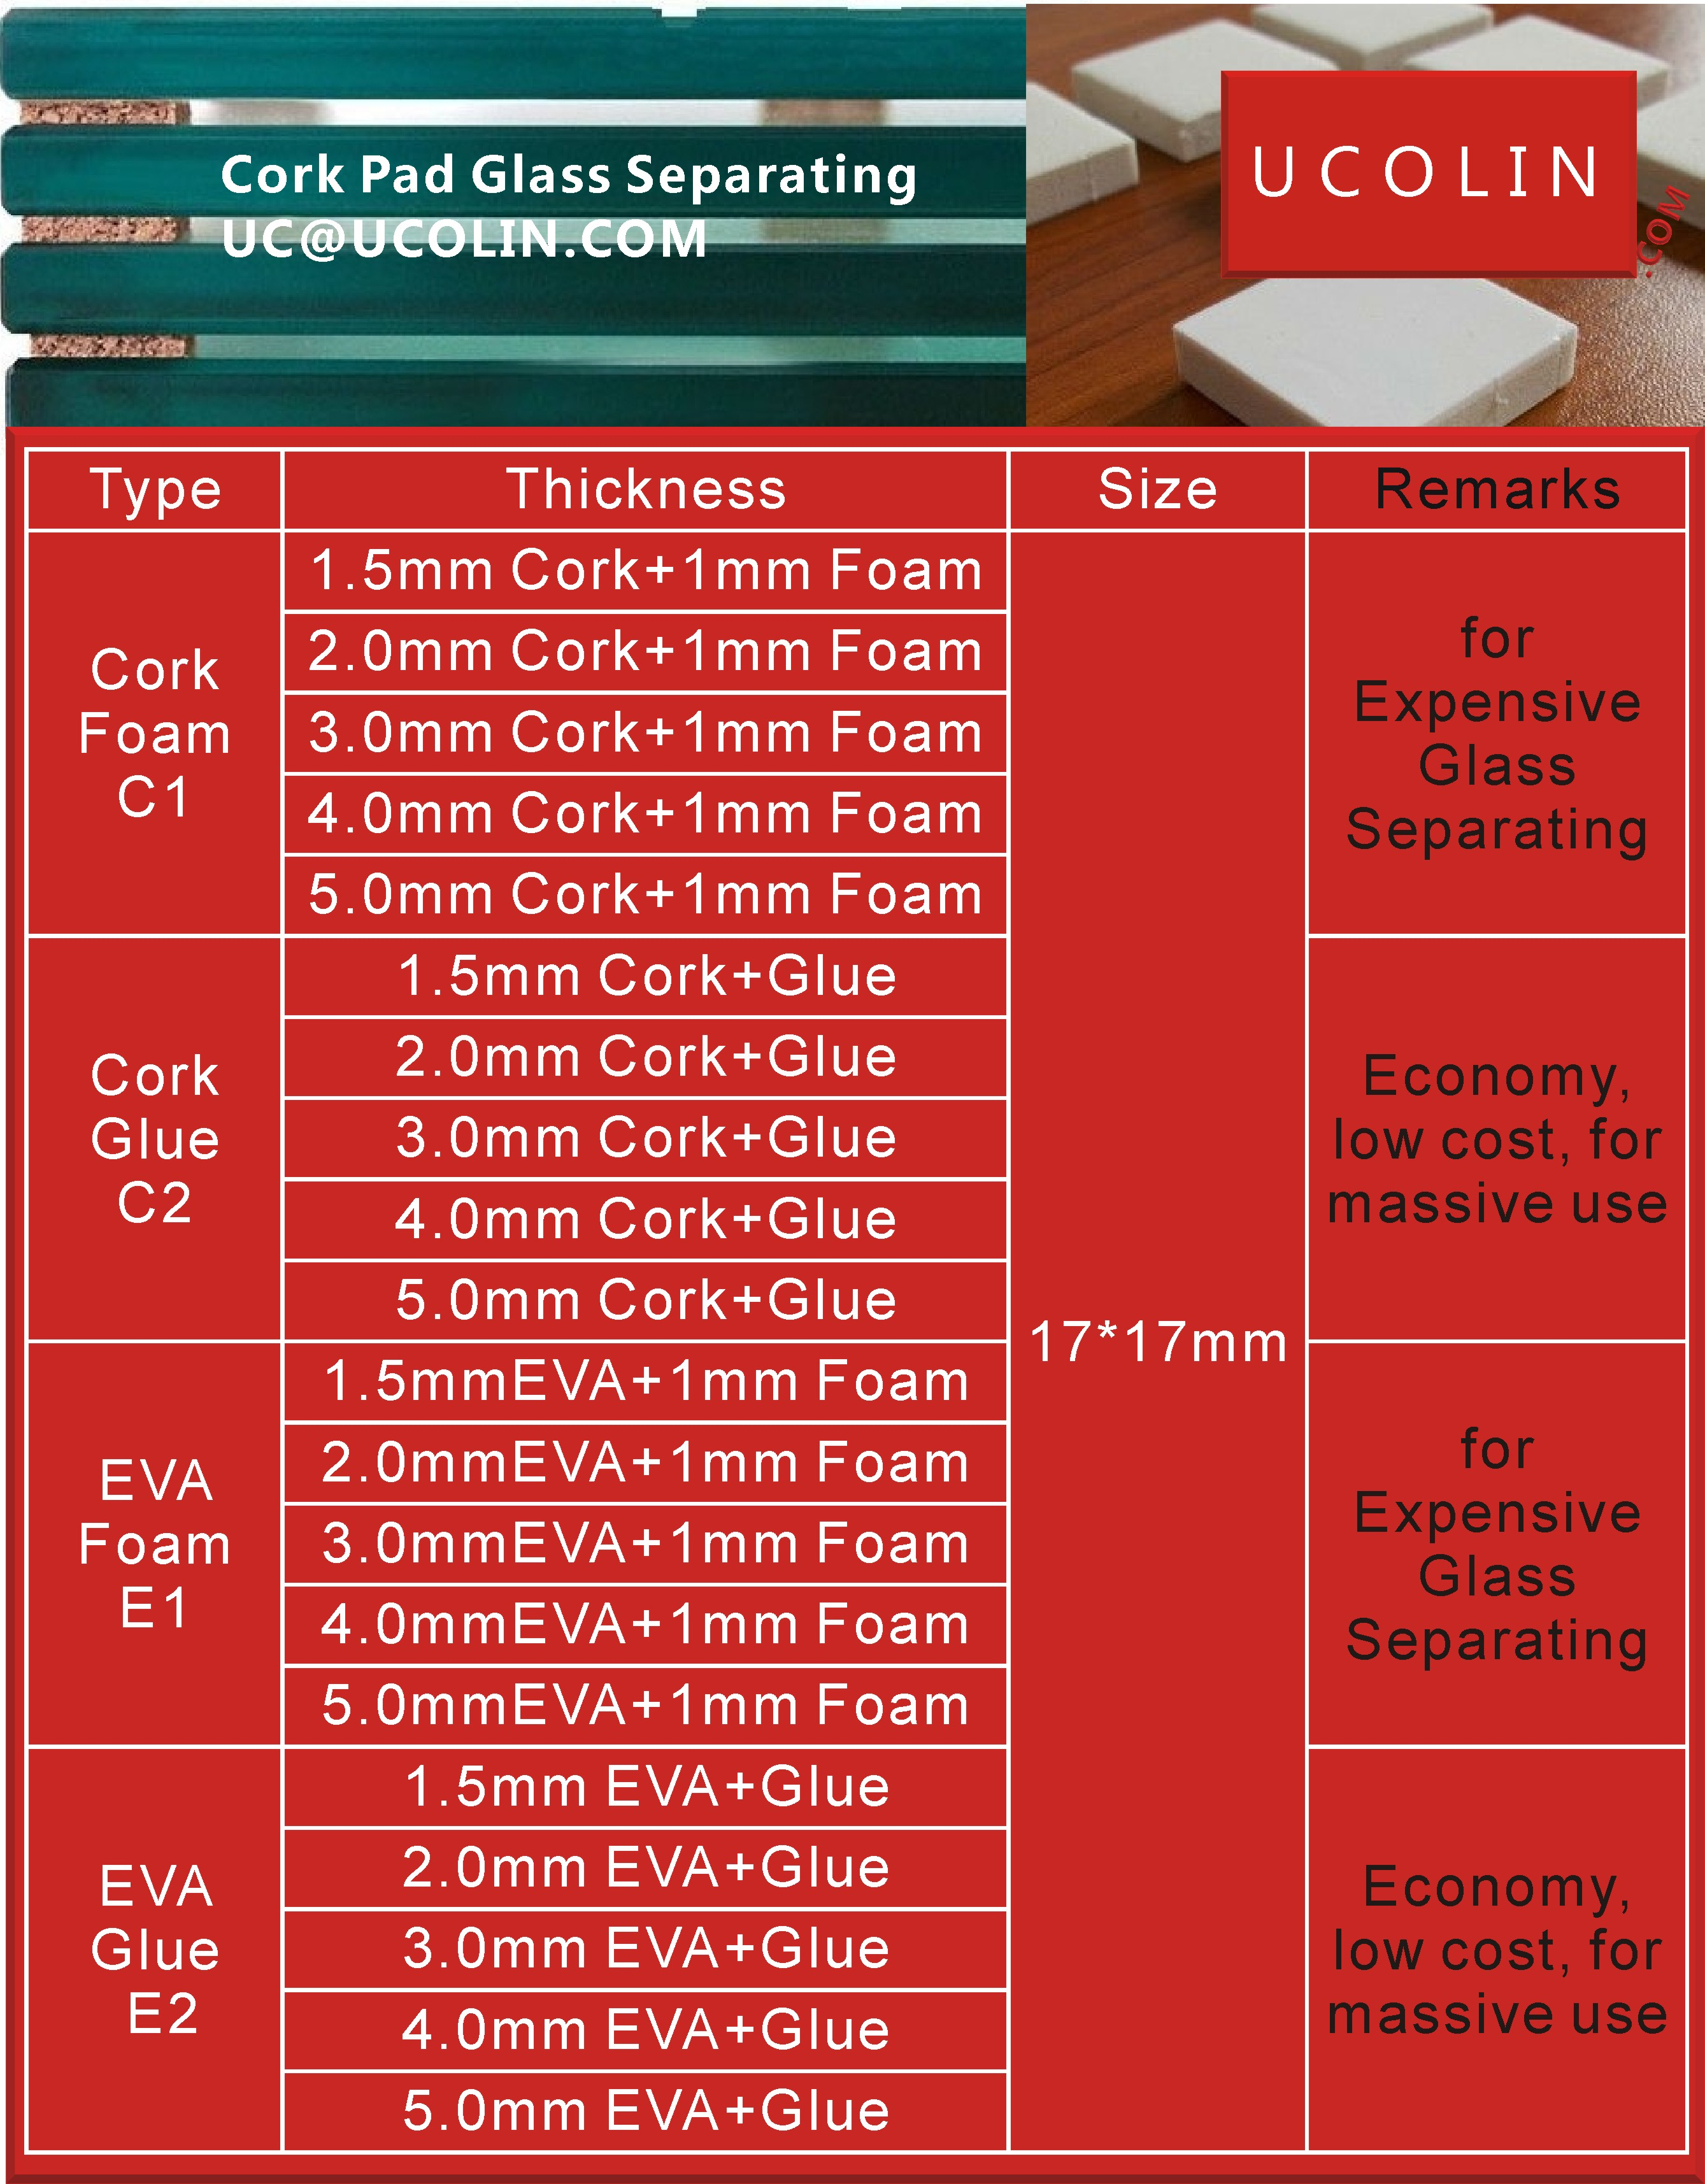 Cork Pad for Glass Separating - CATALOG